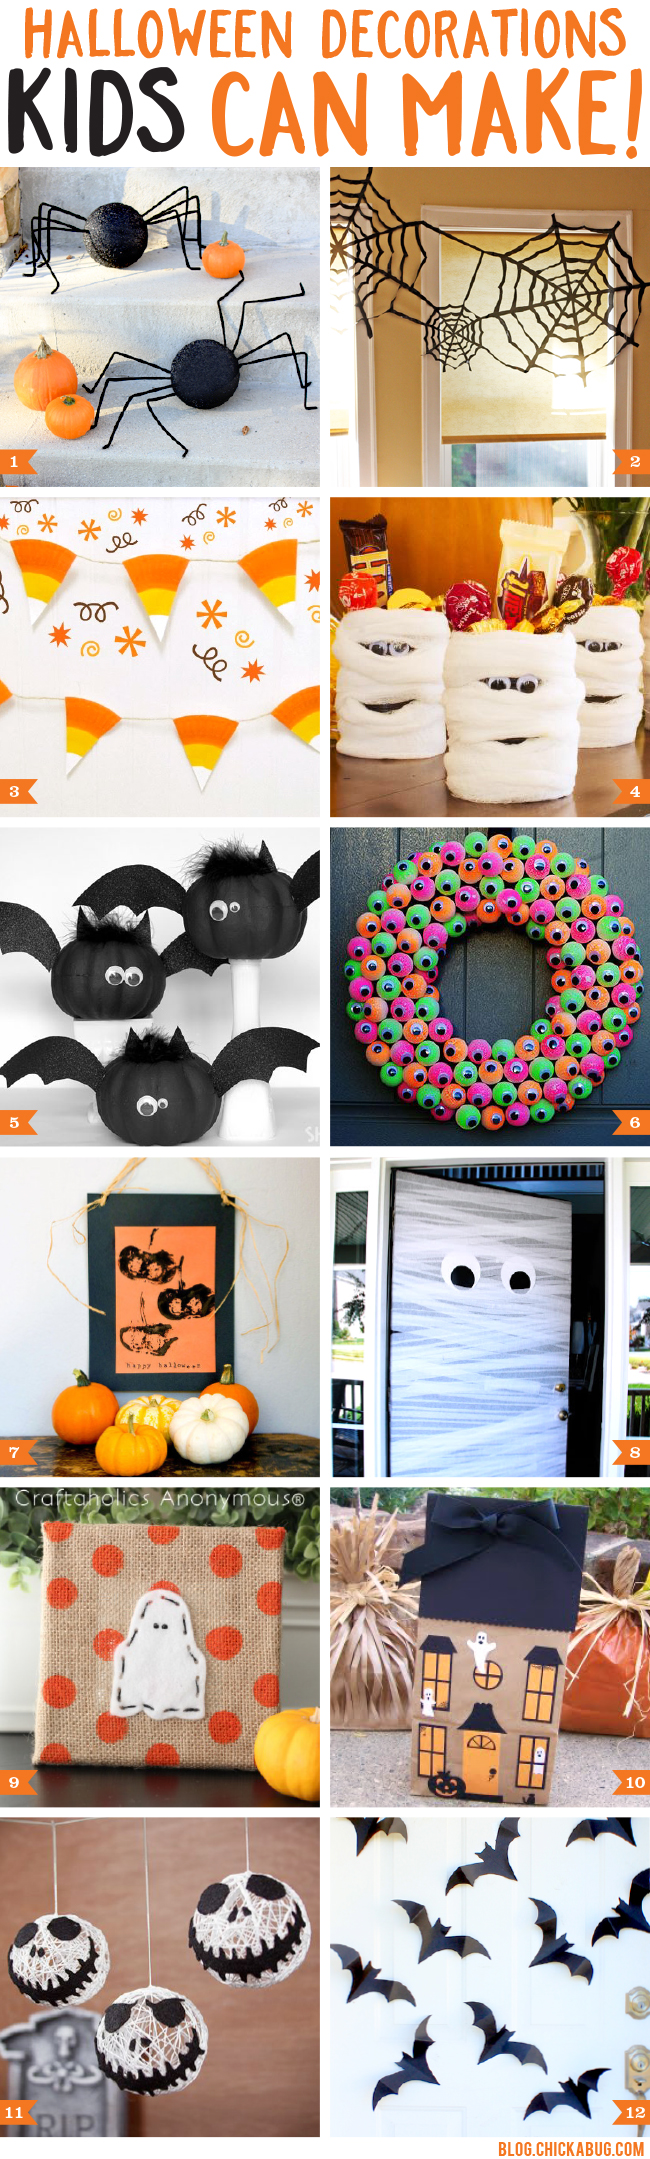 halloween decorations kids can make easy fun and cute decorations that kids can - Halloween Decorations For Kids To Make